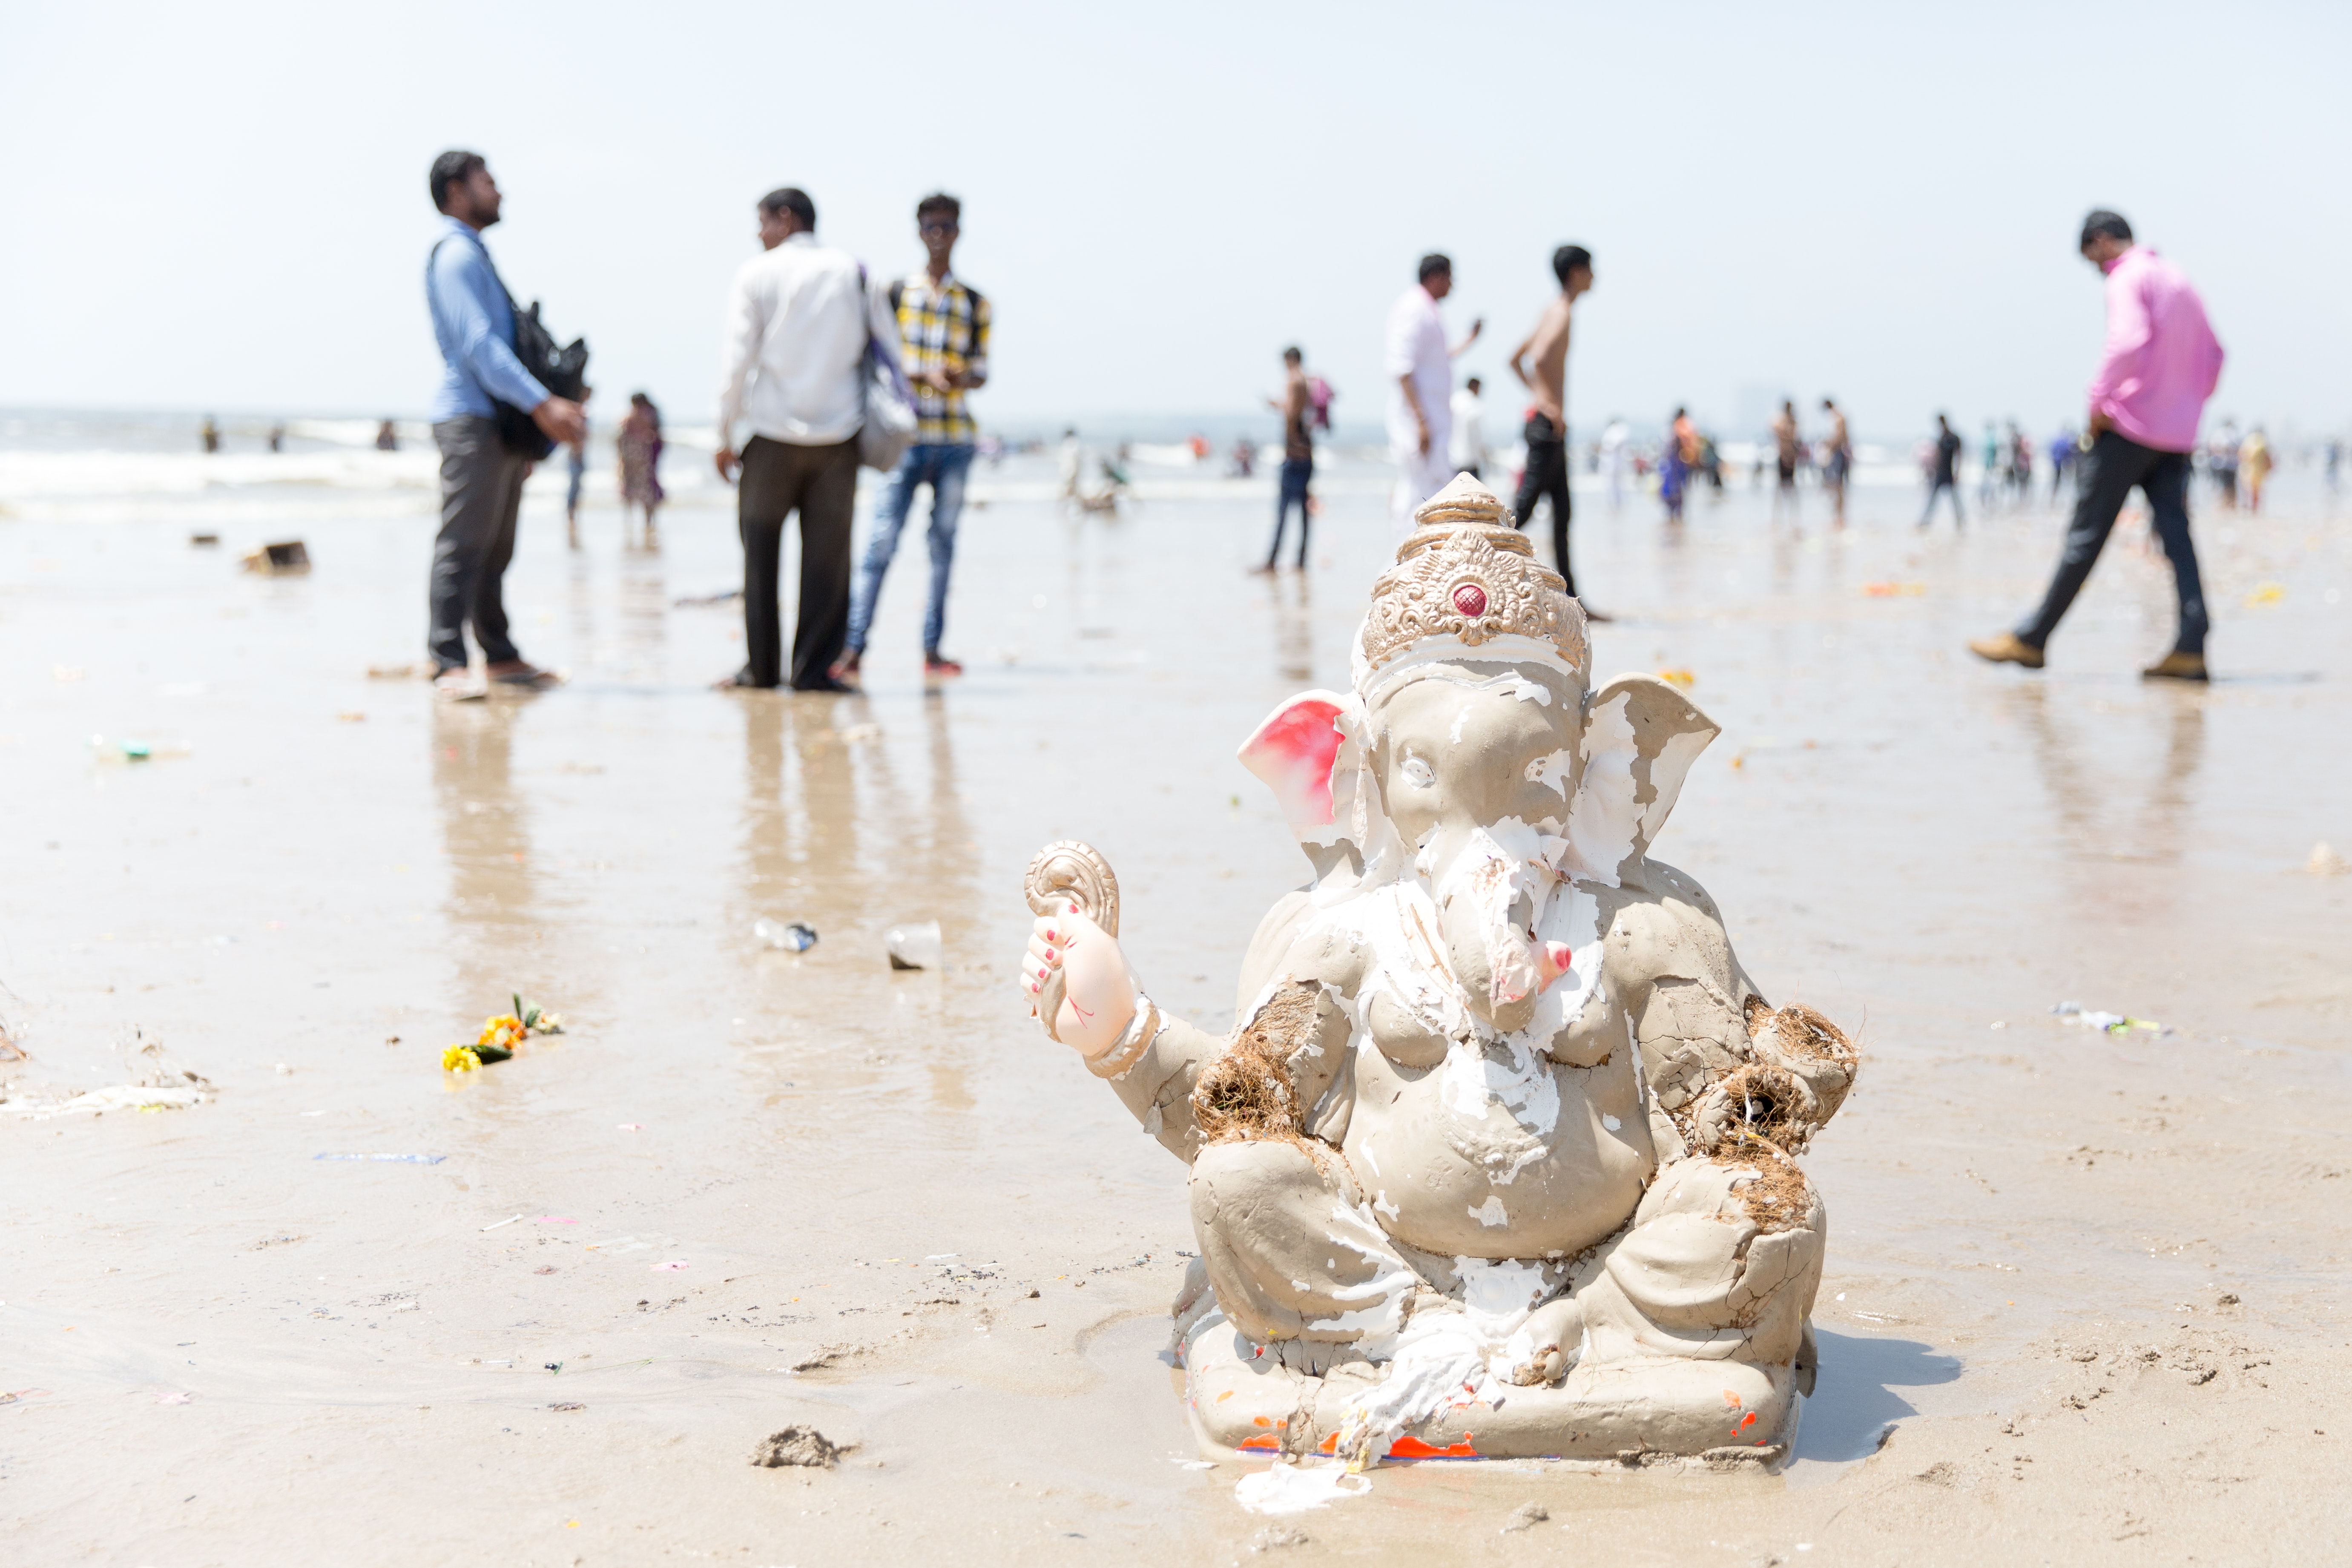 Lord Ganesh figurine on white sand near people during daytime